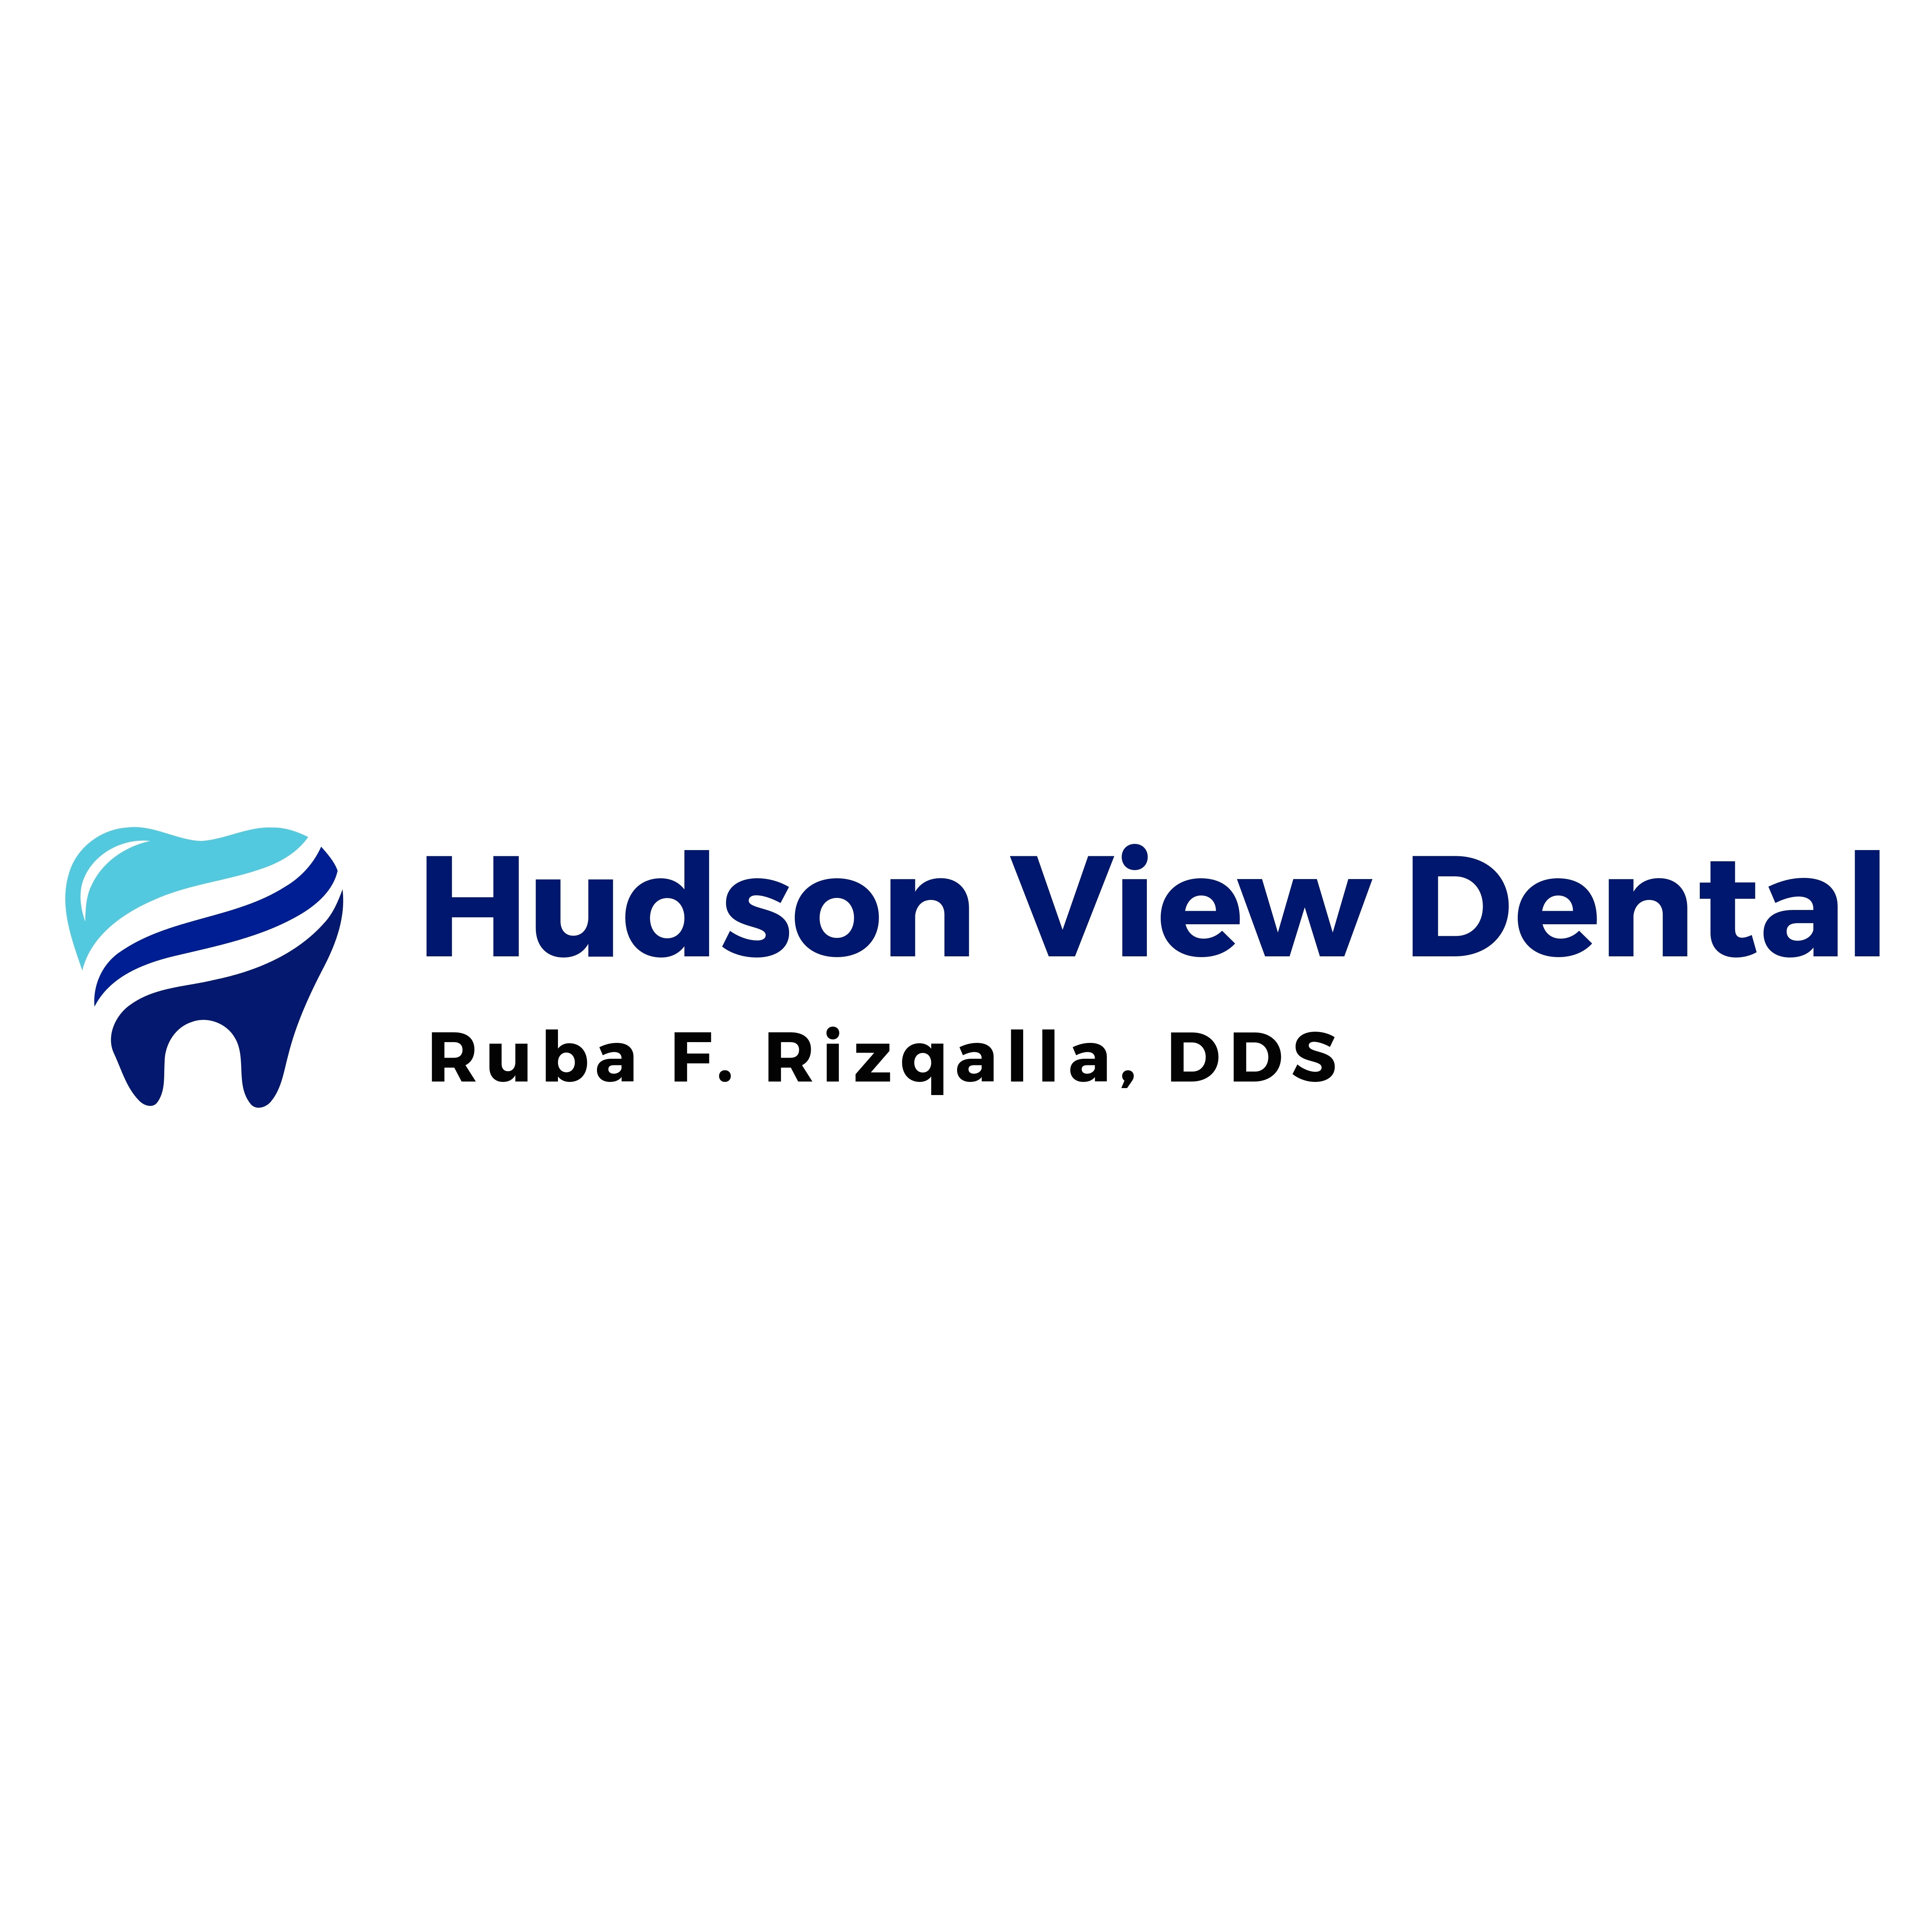 Hudson View Dental